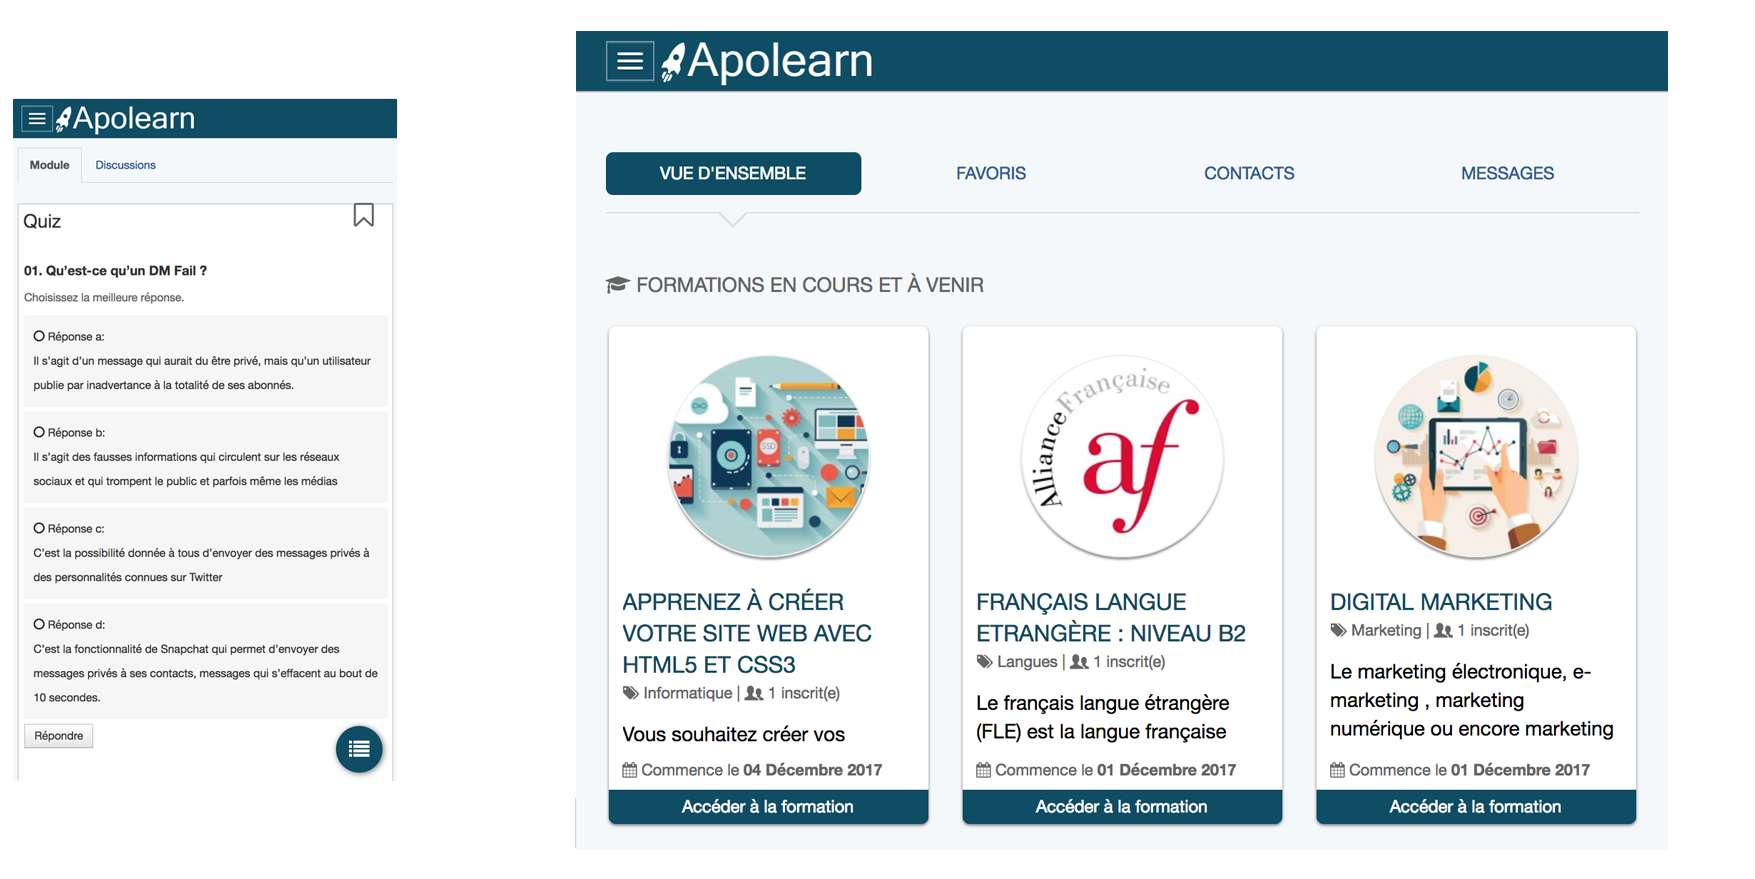 Apolearn Tablette, PC et smartphone